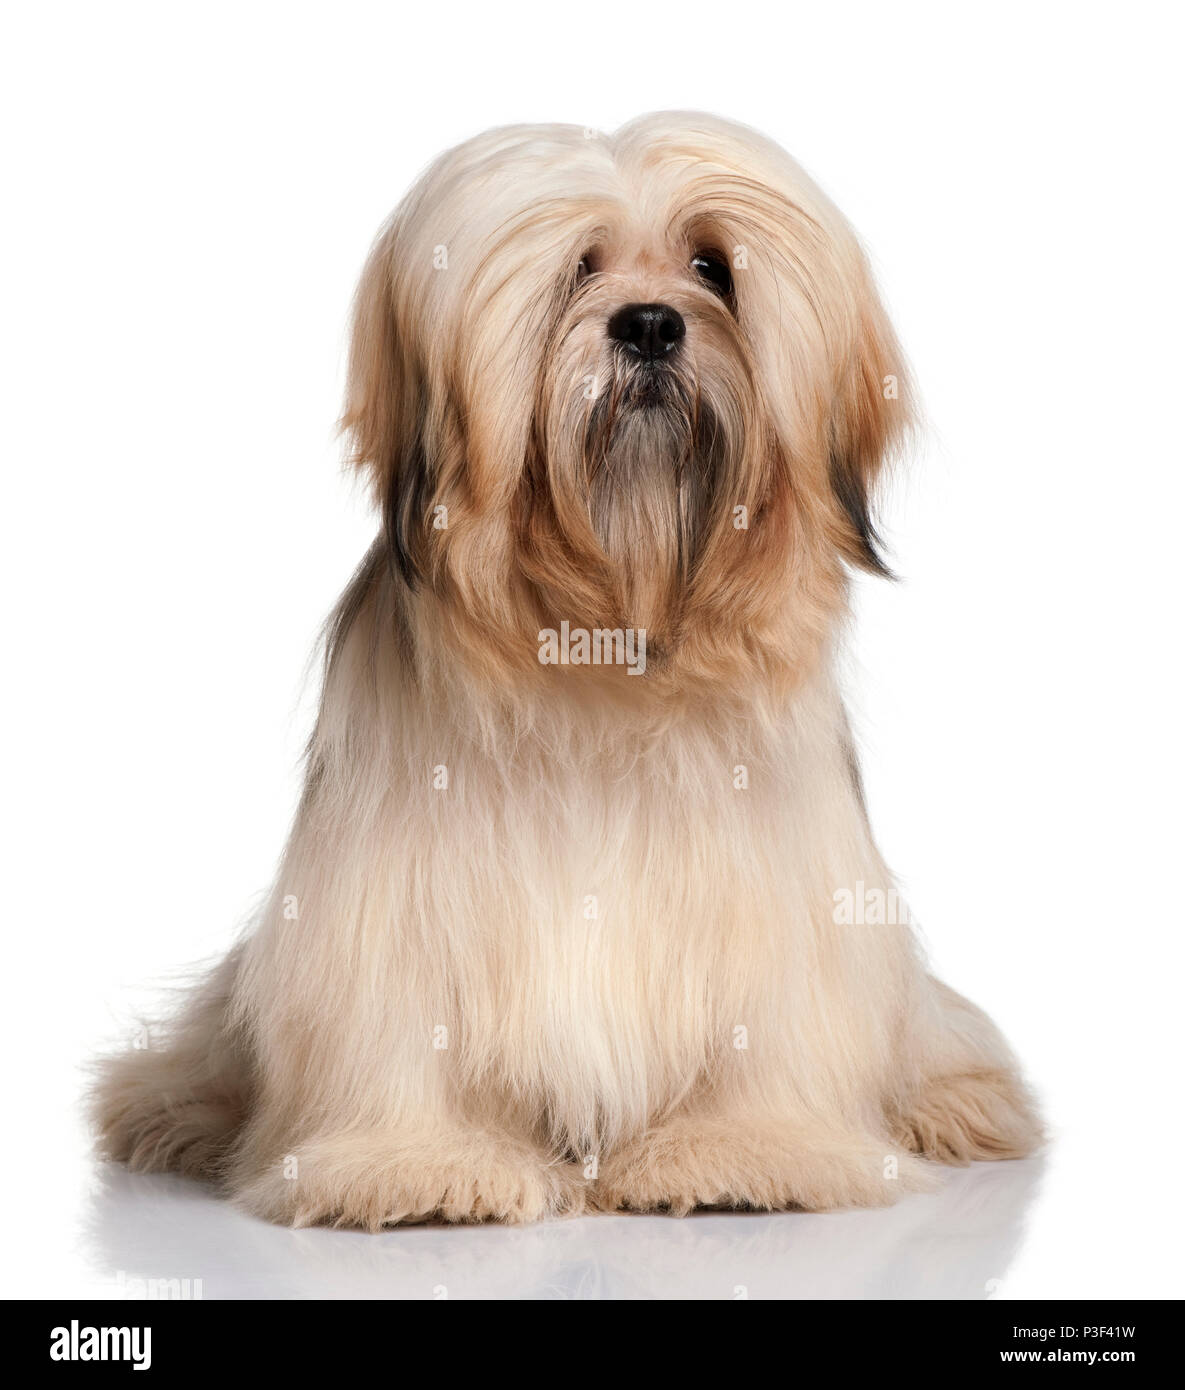 Lhassa Apso, 9 months old, sitting in front of white background - Stock Image